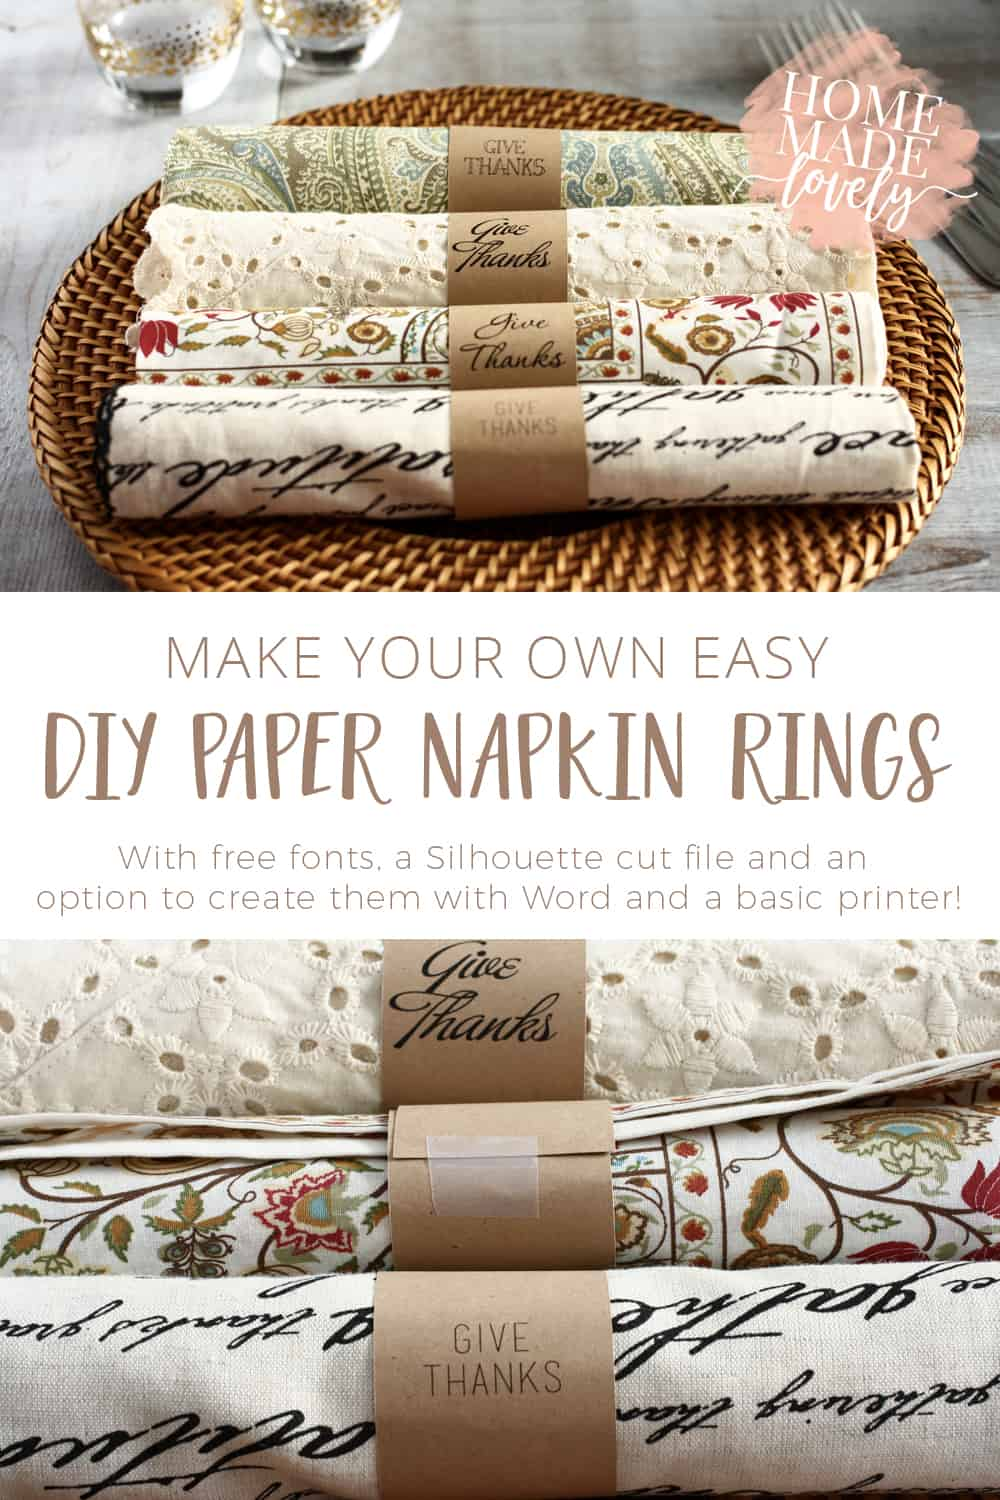 photograph relating to Printable Napkin Rings Template named Straightforward Do it yourself Paper Napkin Rings with Absolutely free Fonts Reduce Record!